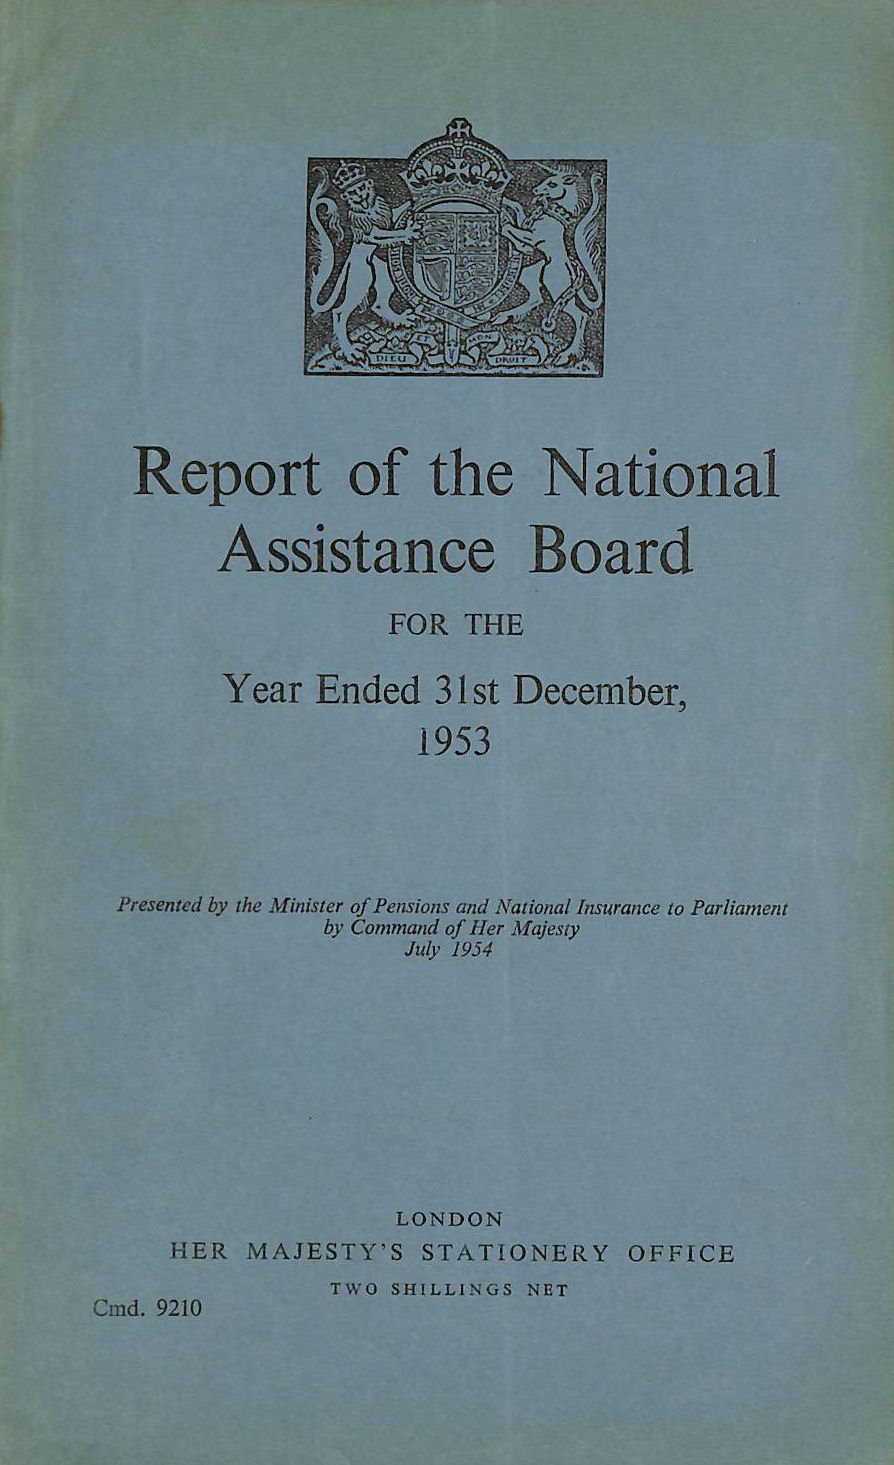 Image for Report of the National Assistance Board 1953